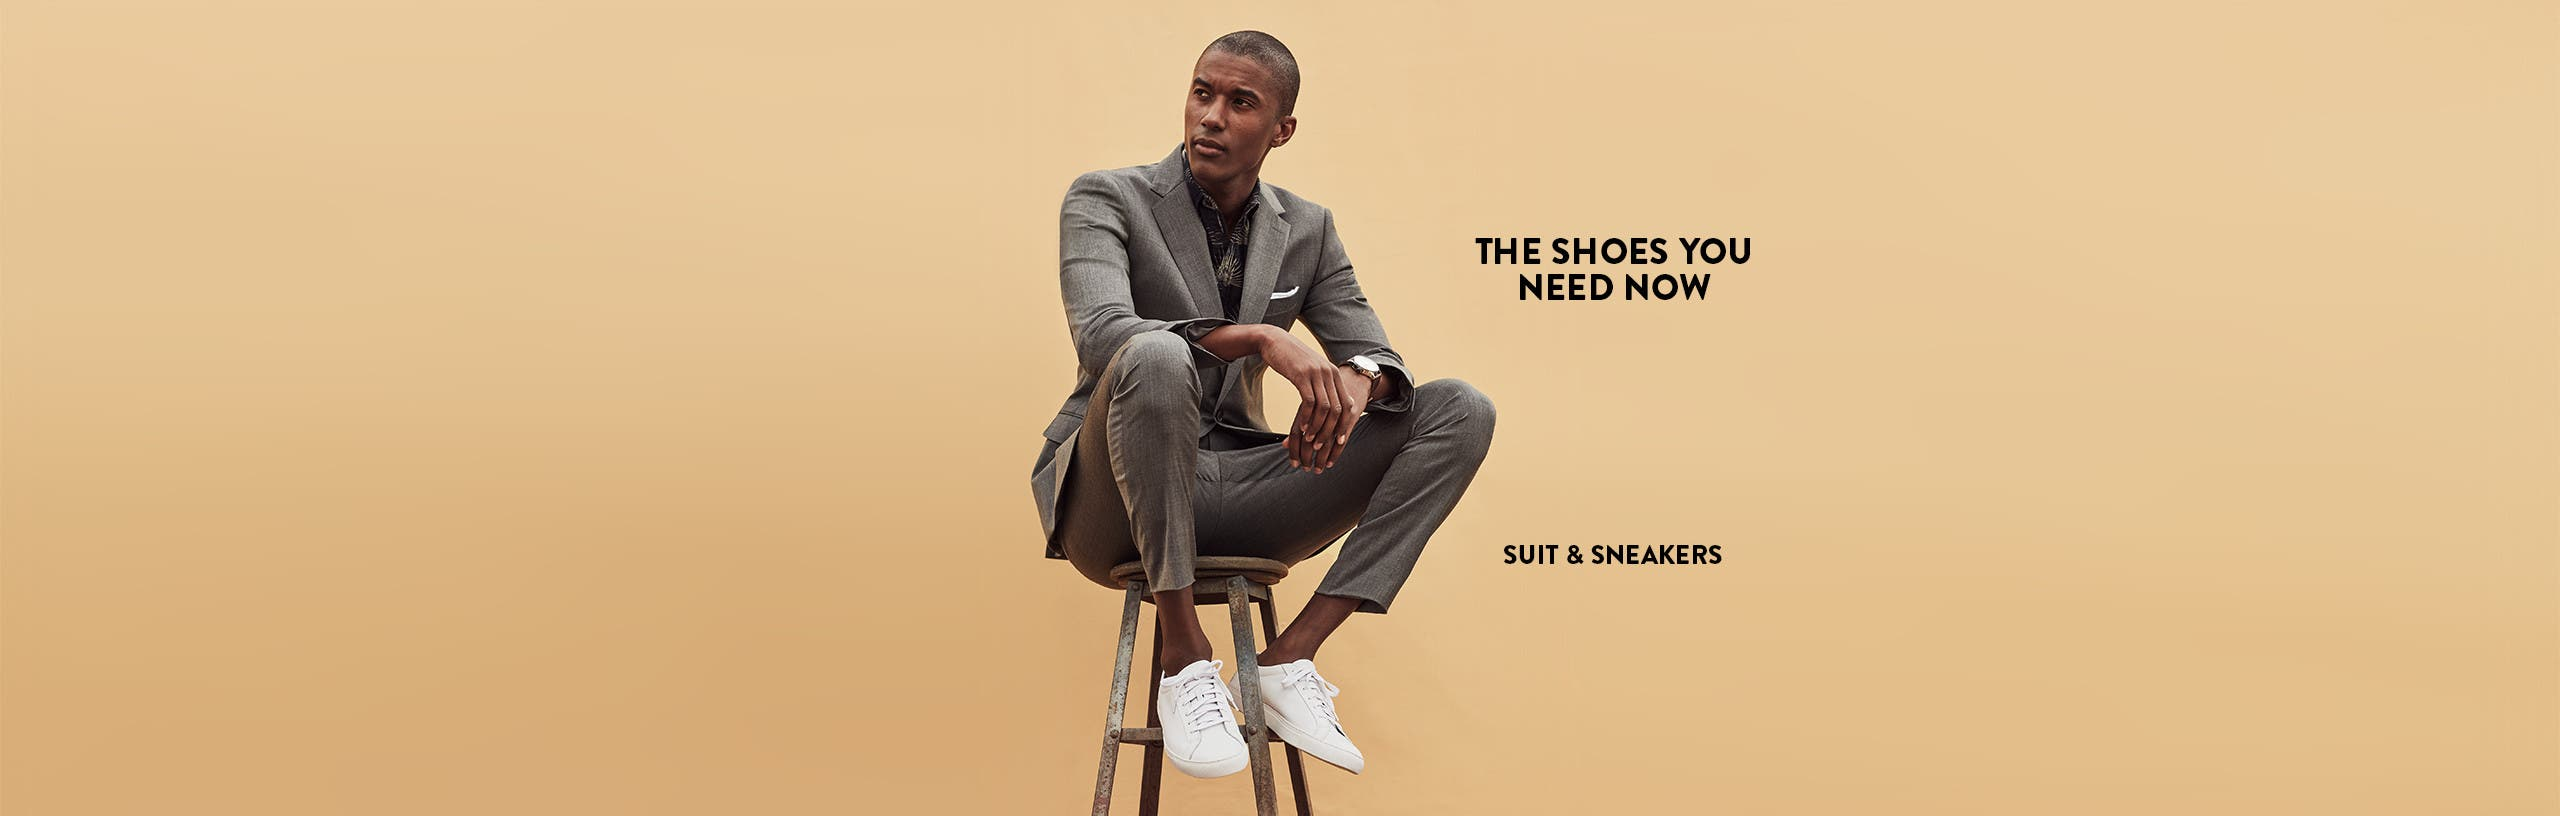 The shoes you need now: sneakers with a suit.